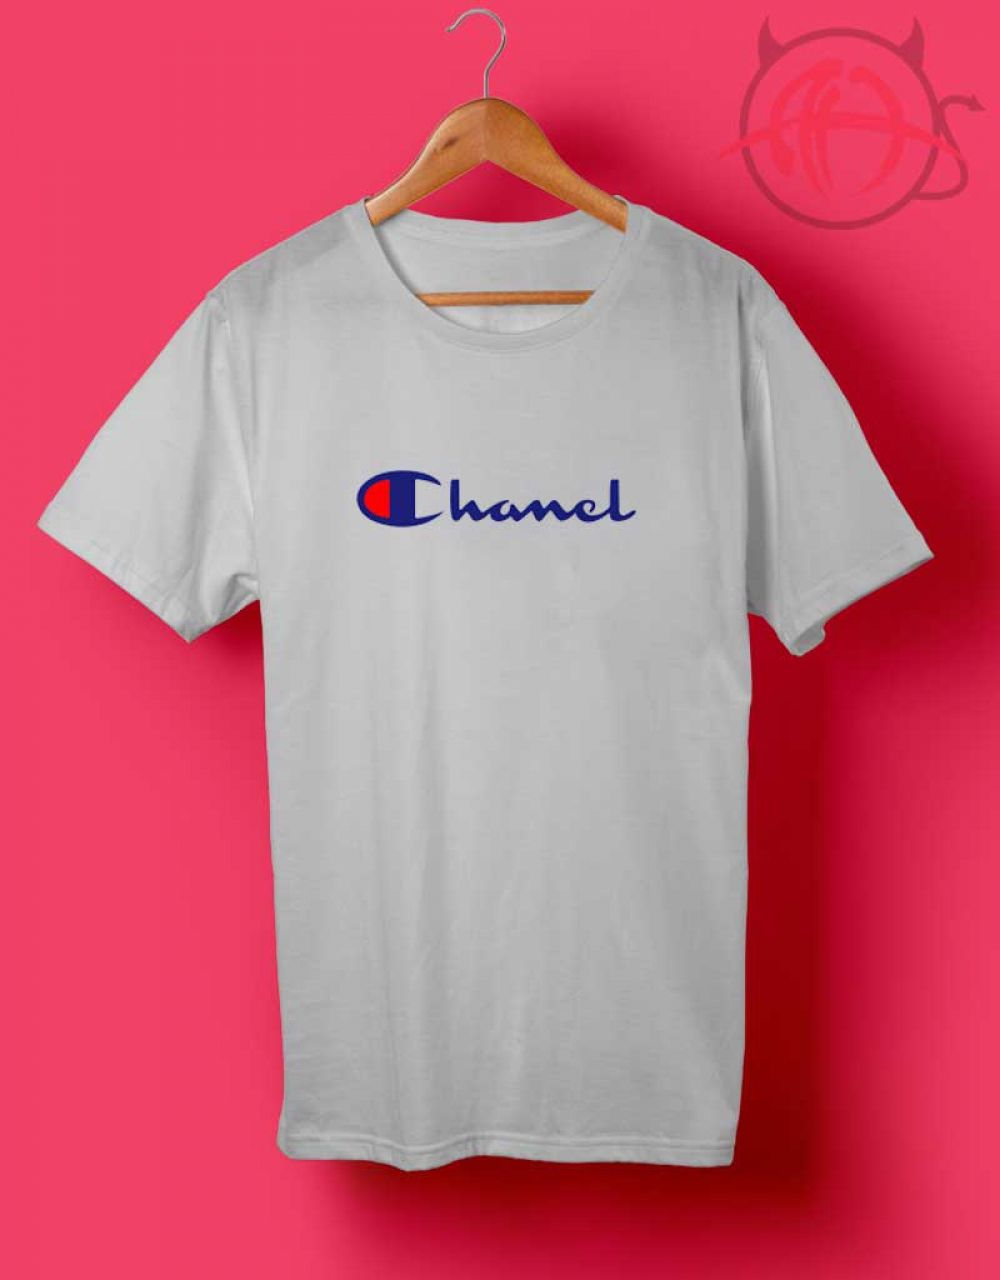 f1c51f2b Chanel Champion T Shirts $ 14.50 #Tee #Hype #Outfits #Outfit #Hypebeast  #fashion #shirt #Tees #Tops #Teen